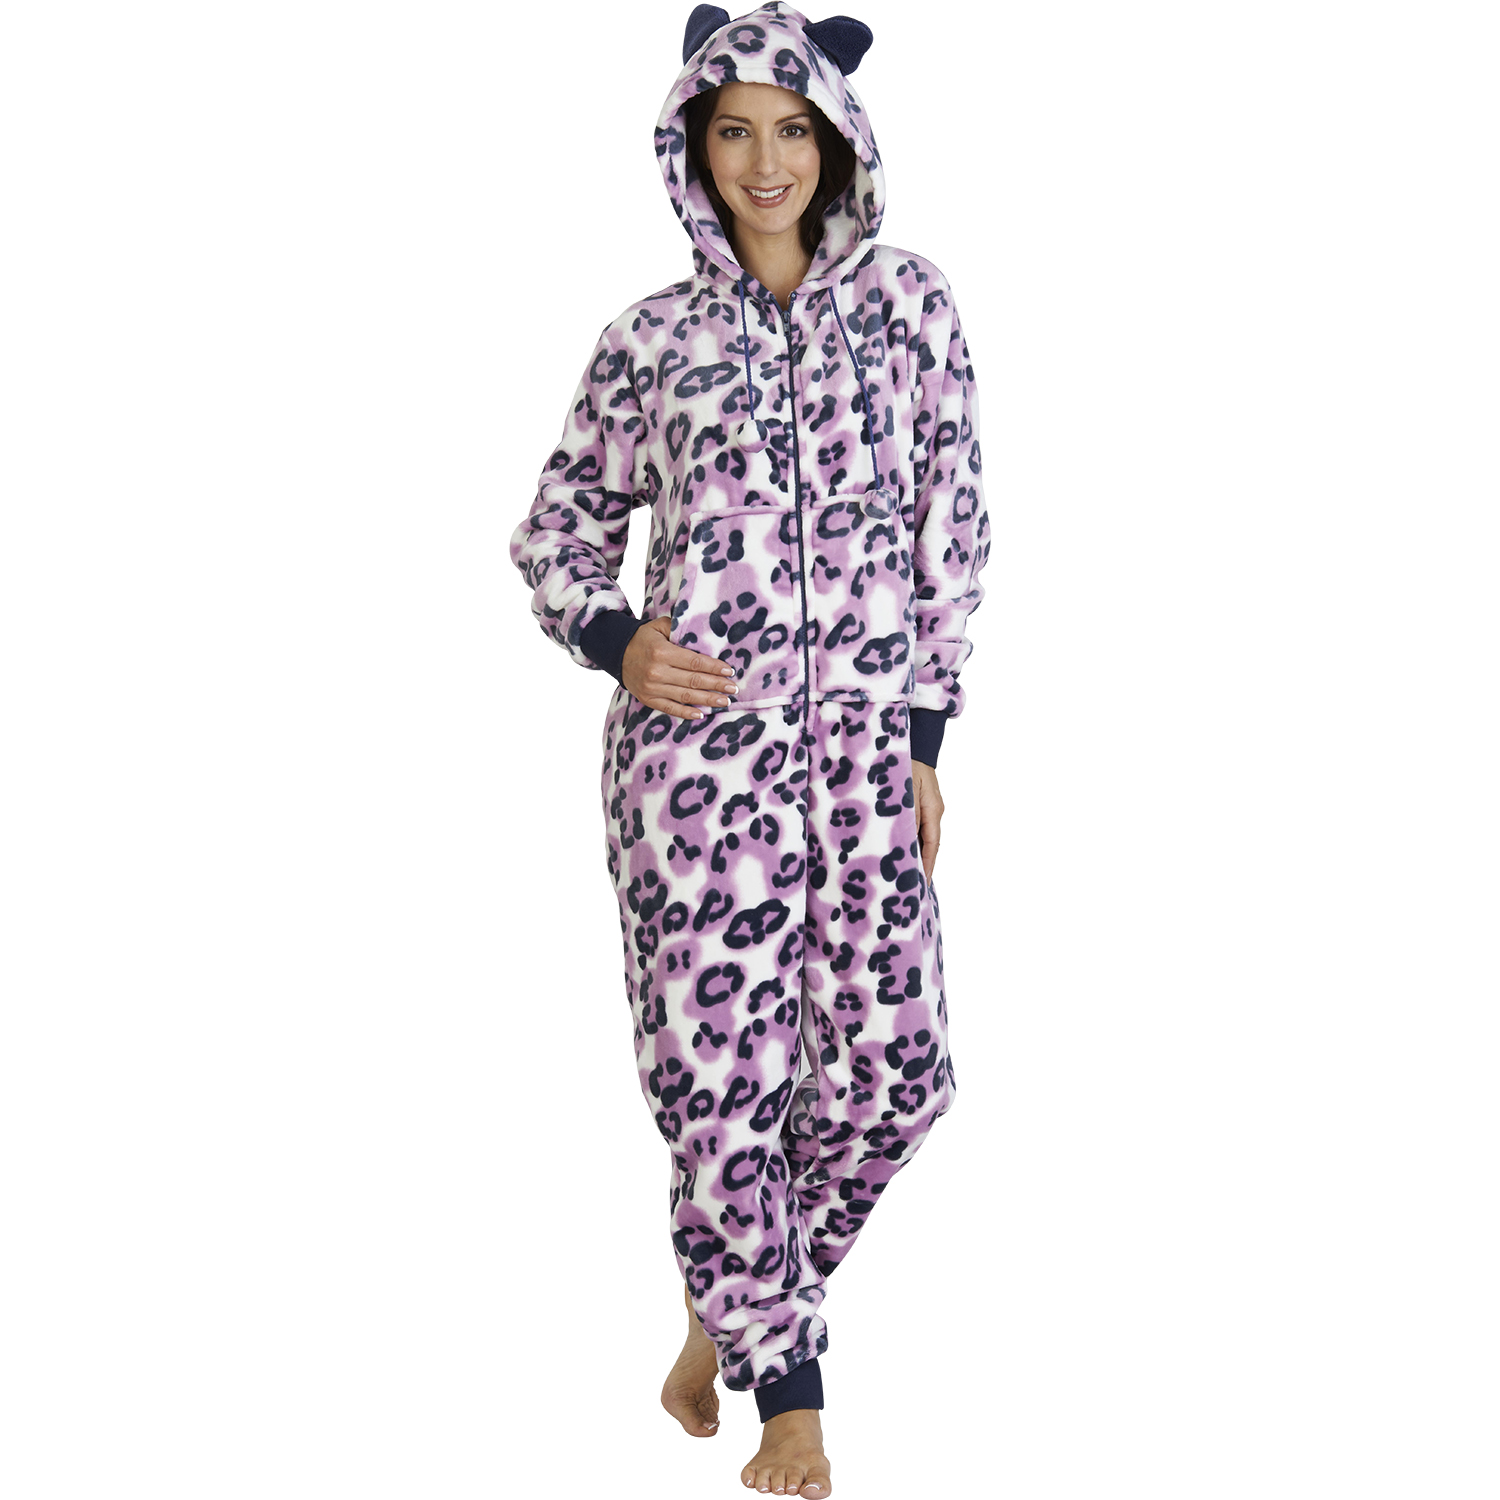 The Leopard Onesie Costume For Adults is the best Halloween costume for you to get! Everyone will love this Womens costume that you picked up from Wholesale Halloween Costumes!